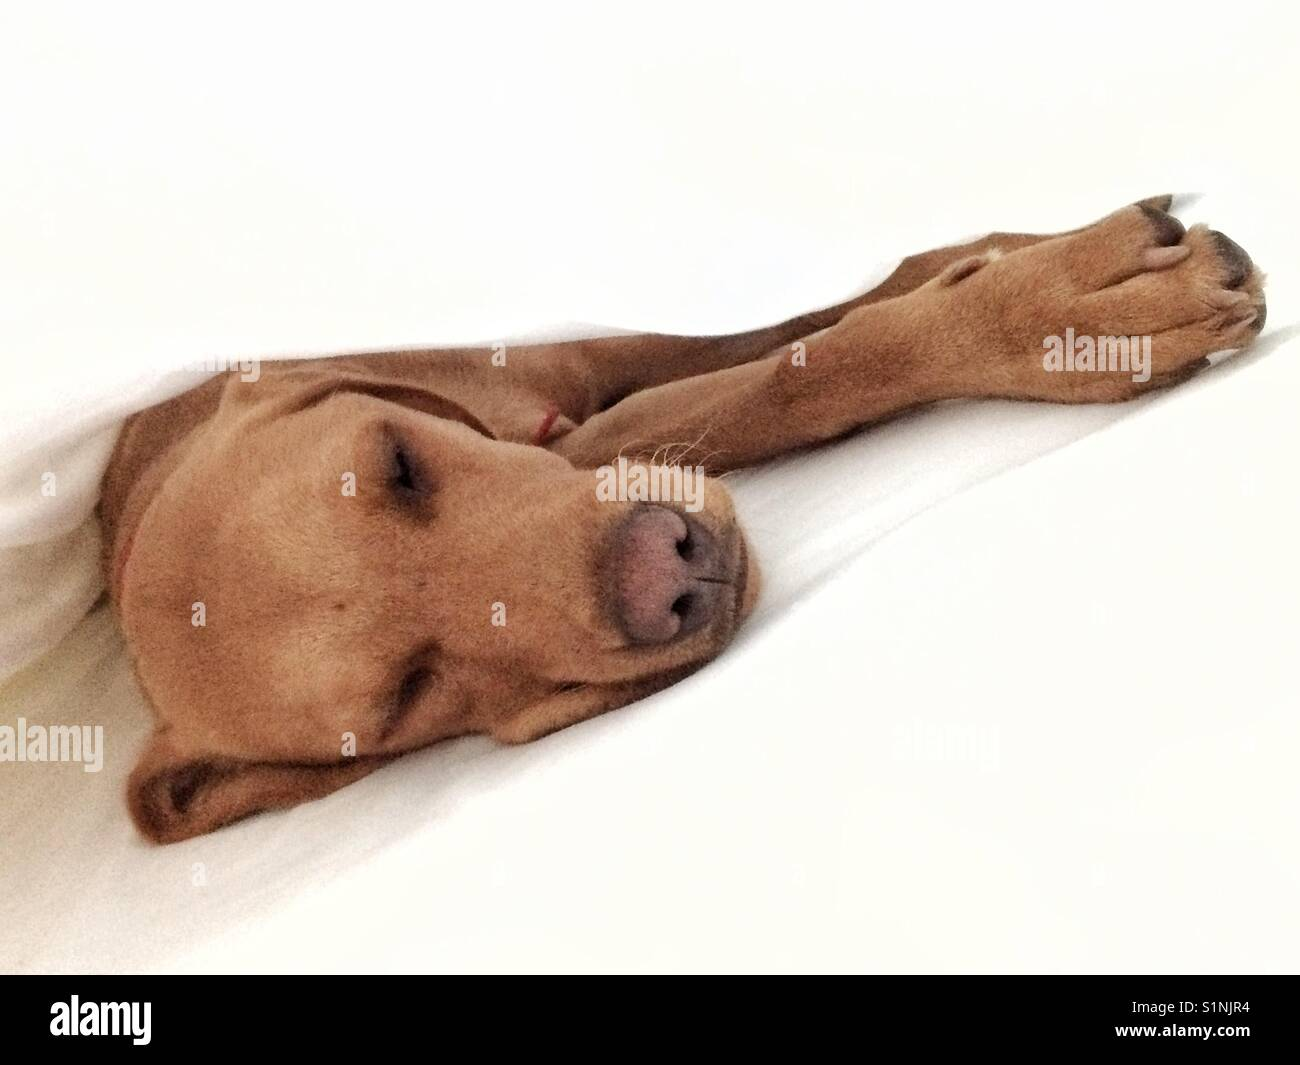 A tired and sleepy puppy dog stretching out under clean white sheets - Stock Image